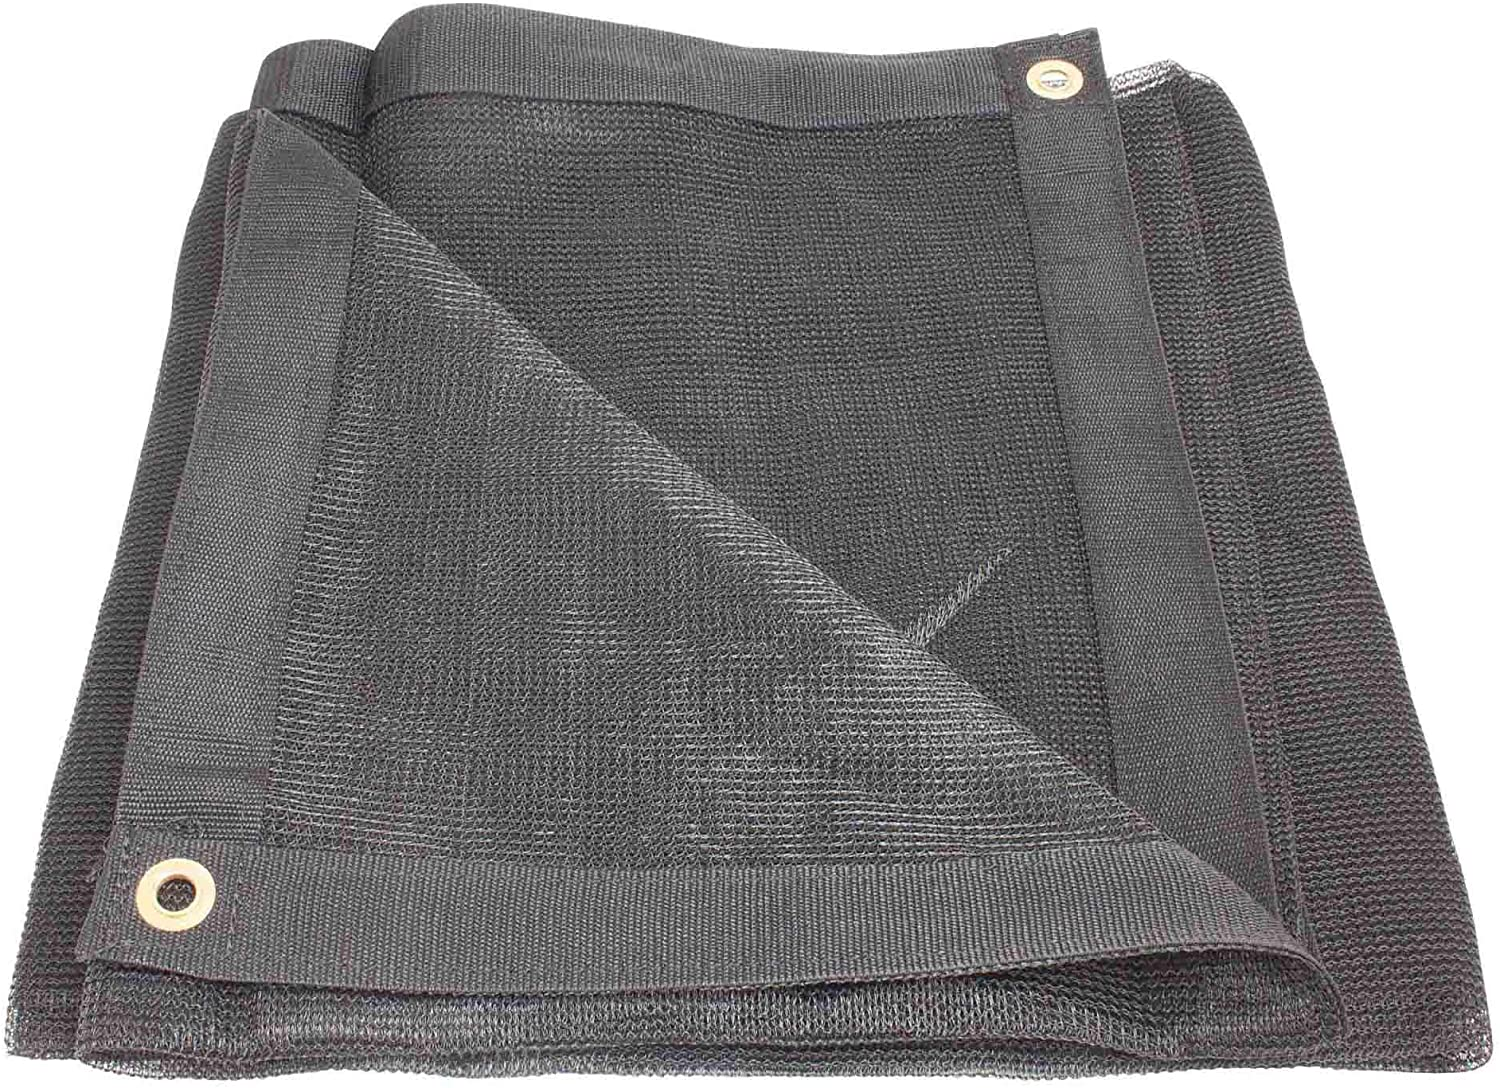 Mytee Products 12' x 26' Black Heavy Duty 6 Oz 70% Shade Mesh Tarps with Grommets ROLL-Off | Sturdy Mesh Tarp Shades for Sun Light Blockage, Green House, Garden, Swimming Pool, Balcony Privacy Mesh